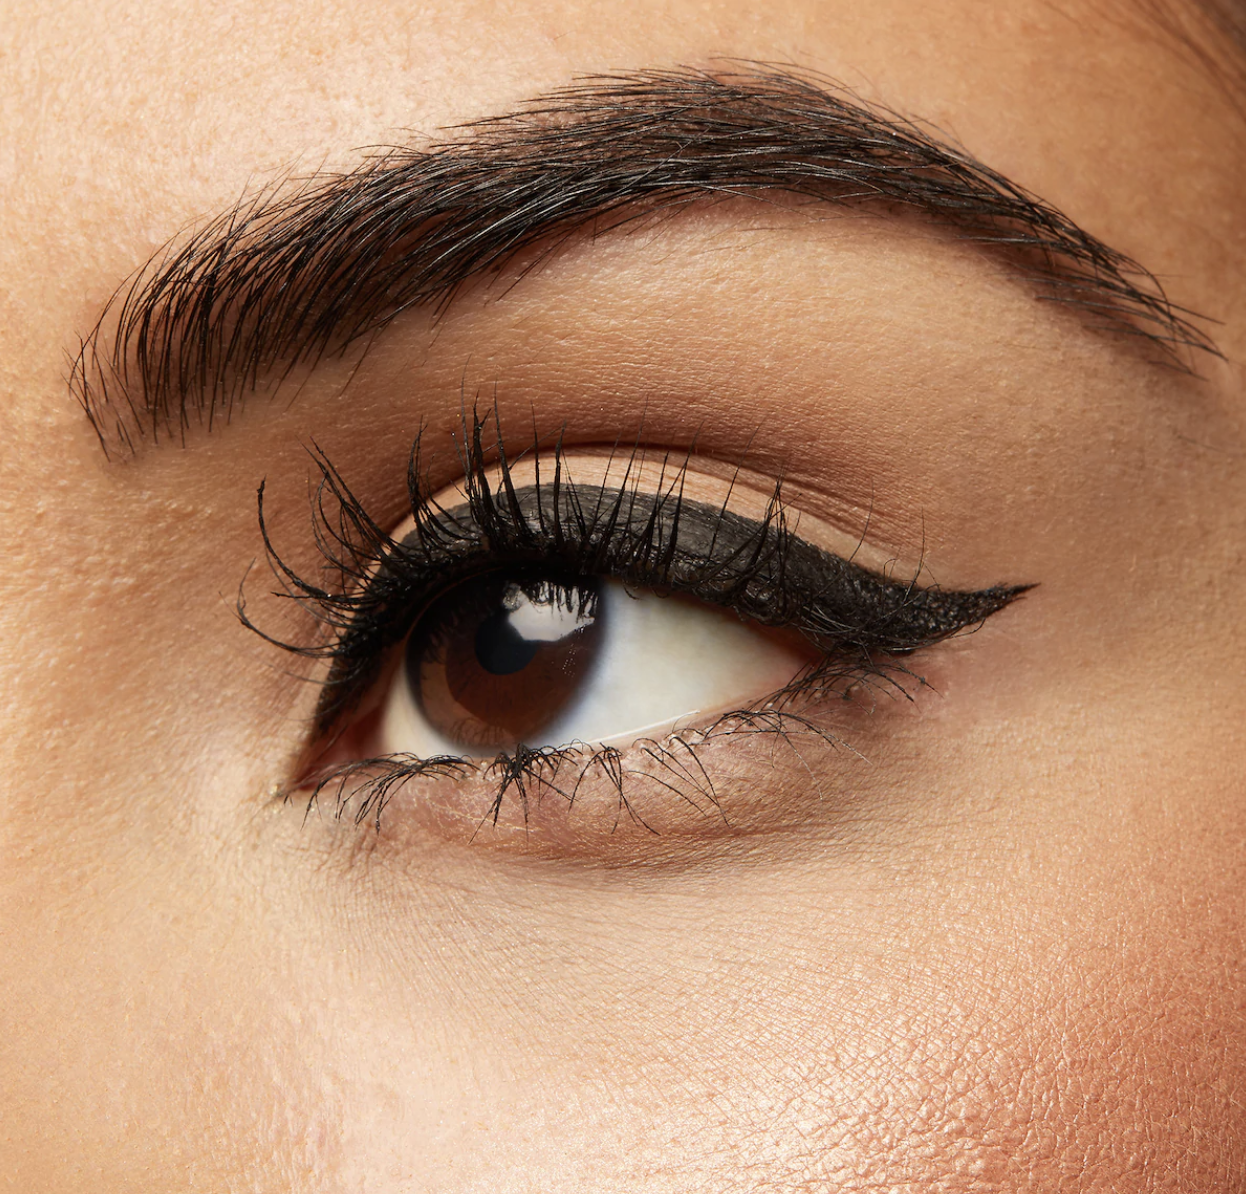 A model's eye with a winged eyeliner look and lashes looking long and slightly curled